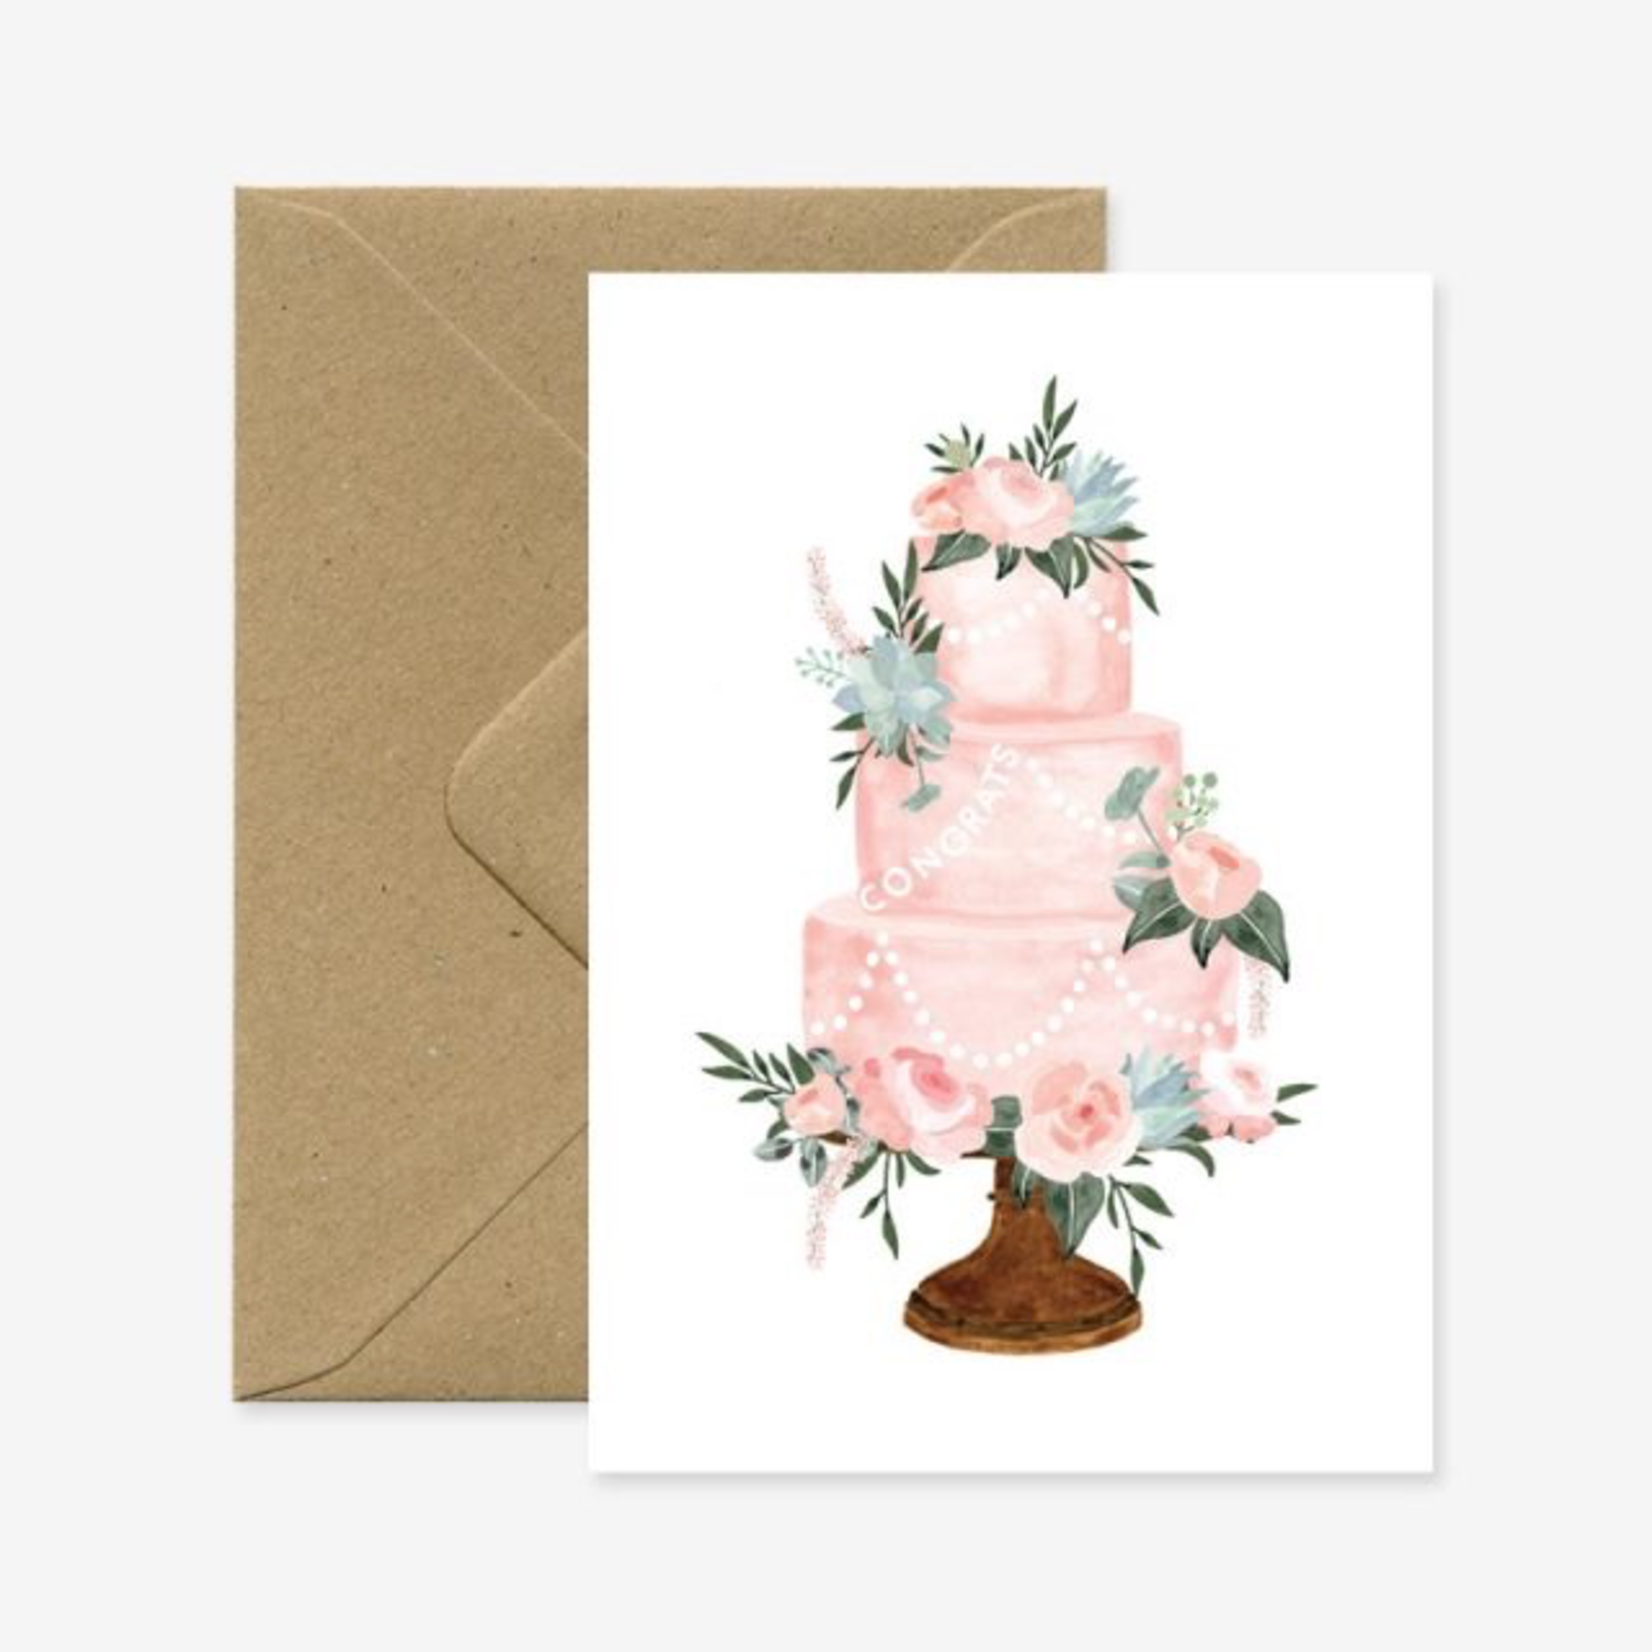 All The Ways To Say Congrats Wedding Cake Card